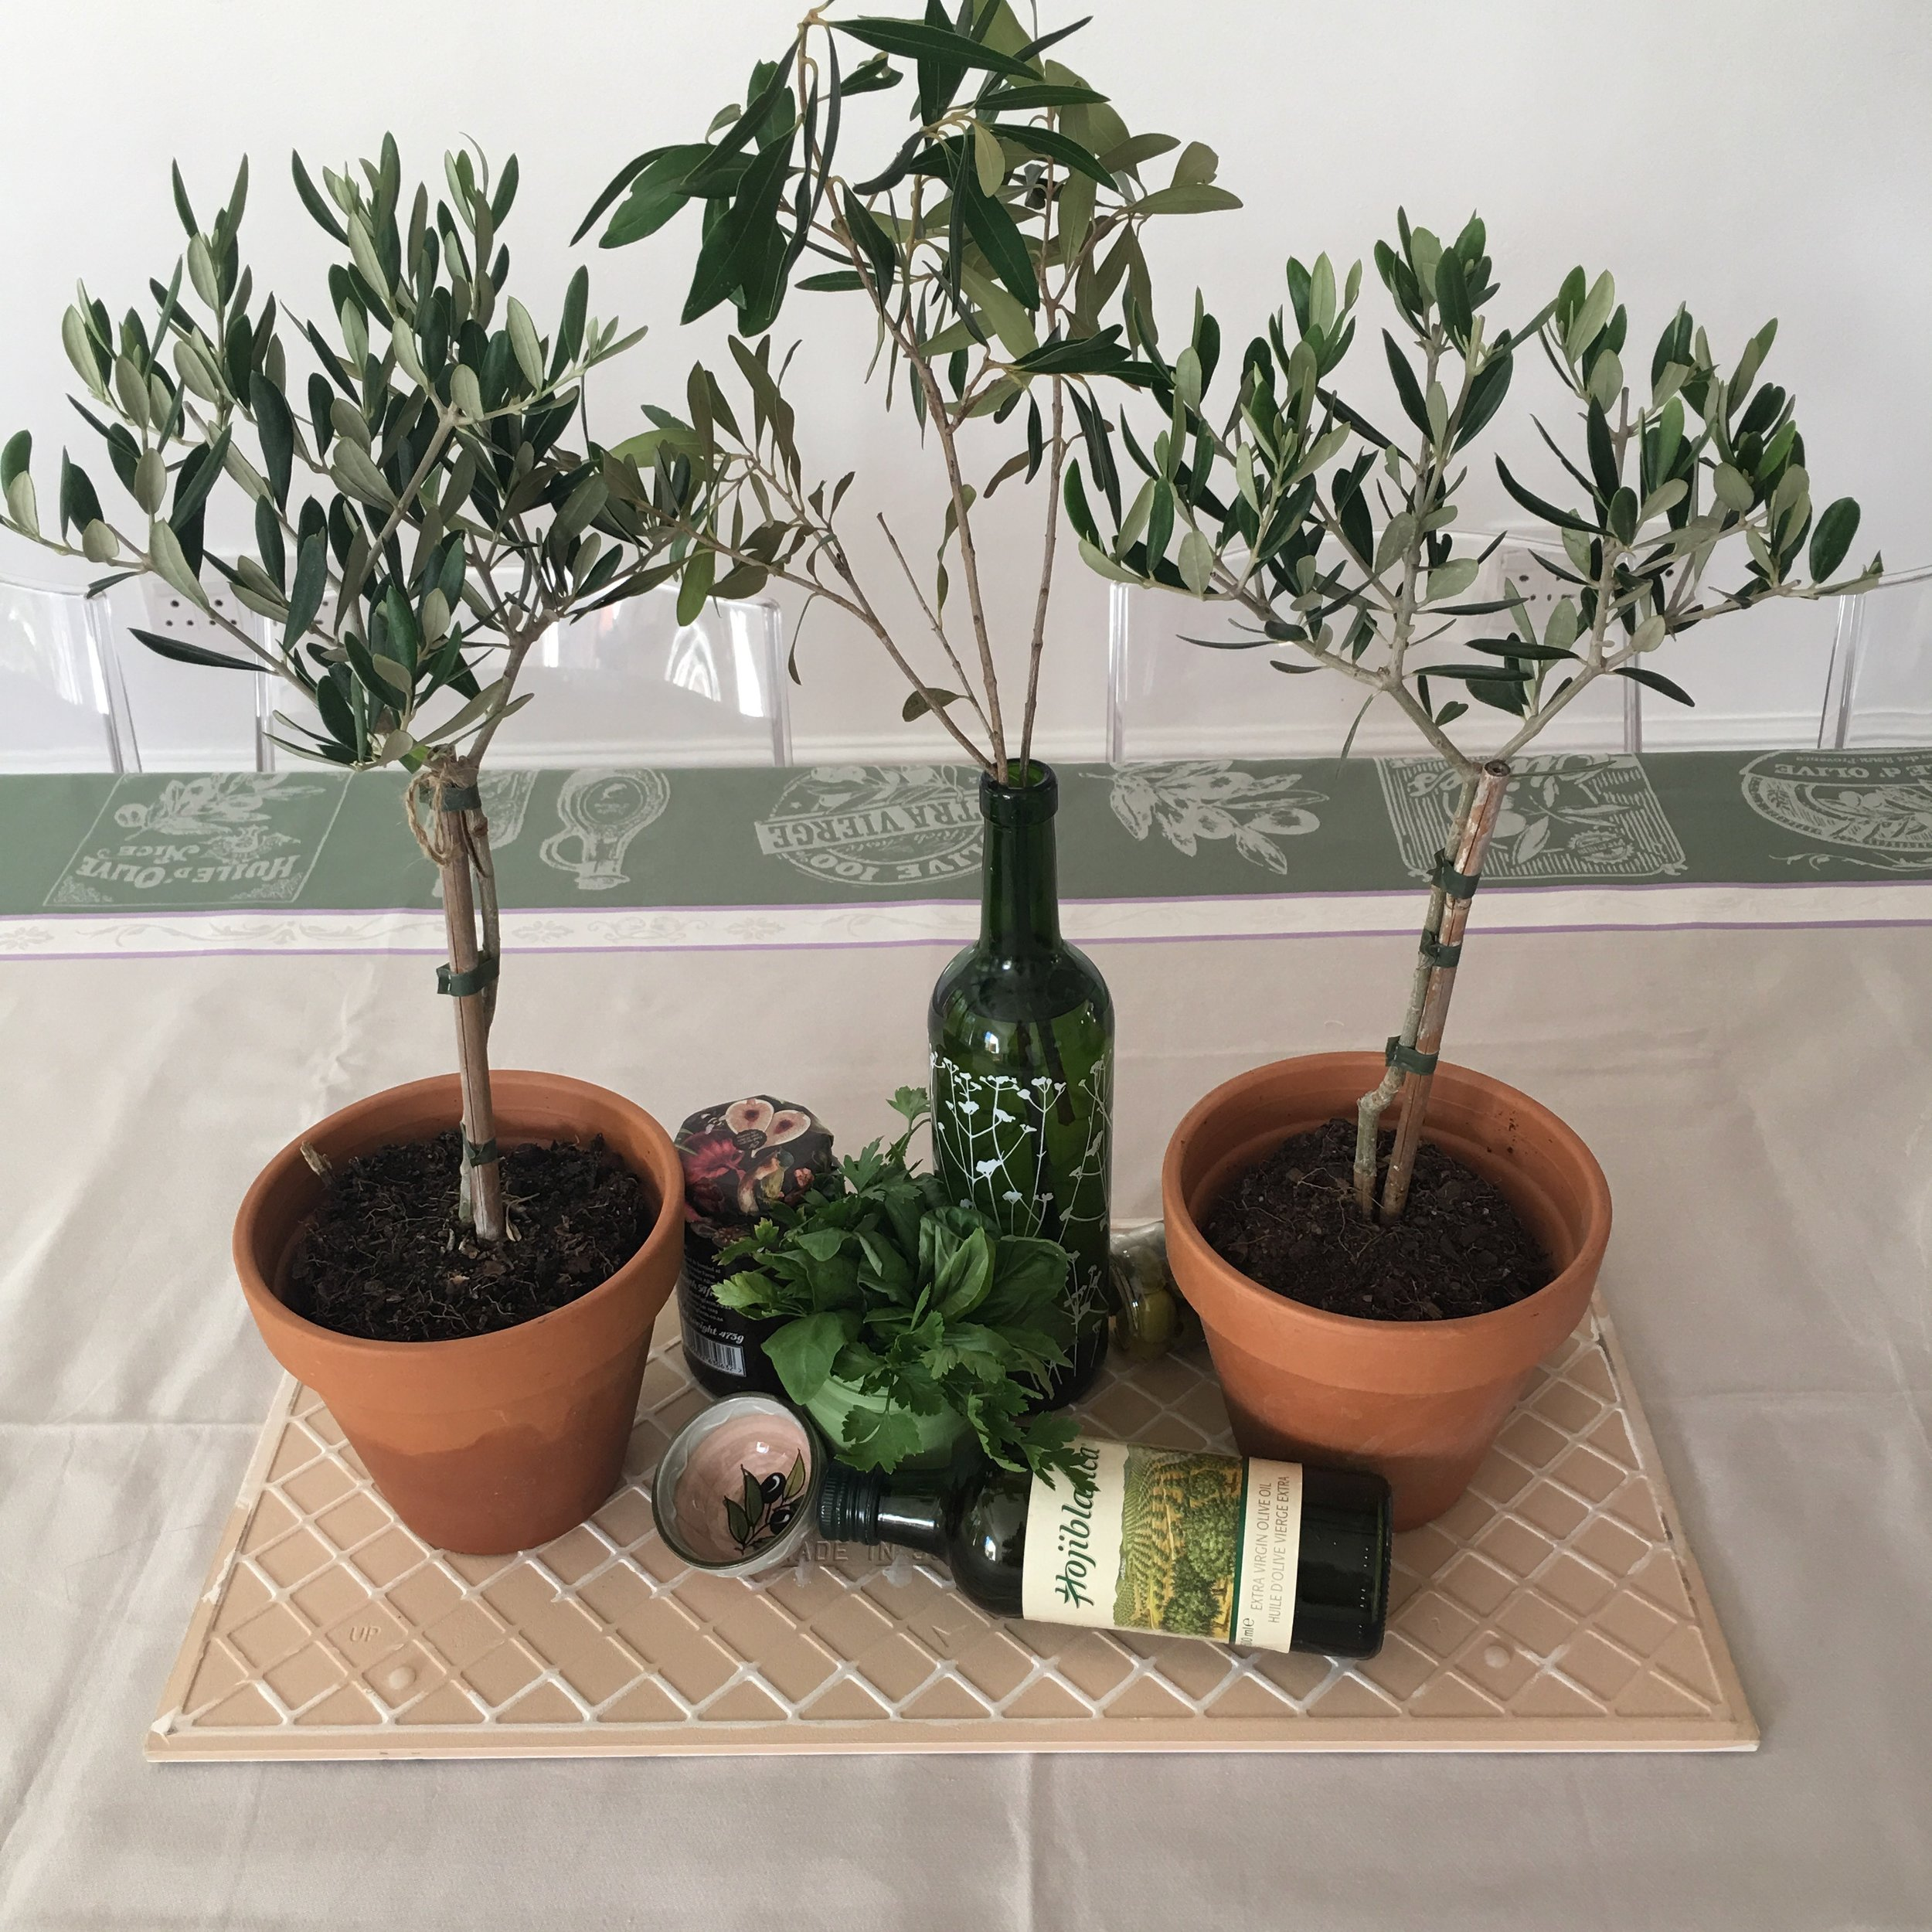 Olive plants used as table decor